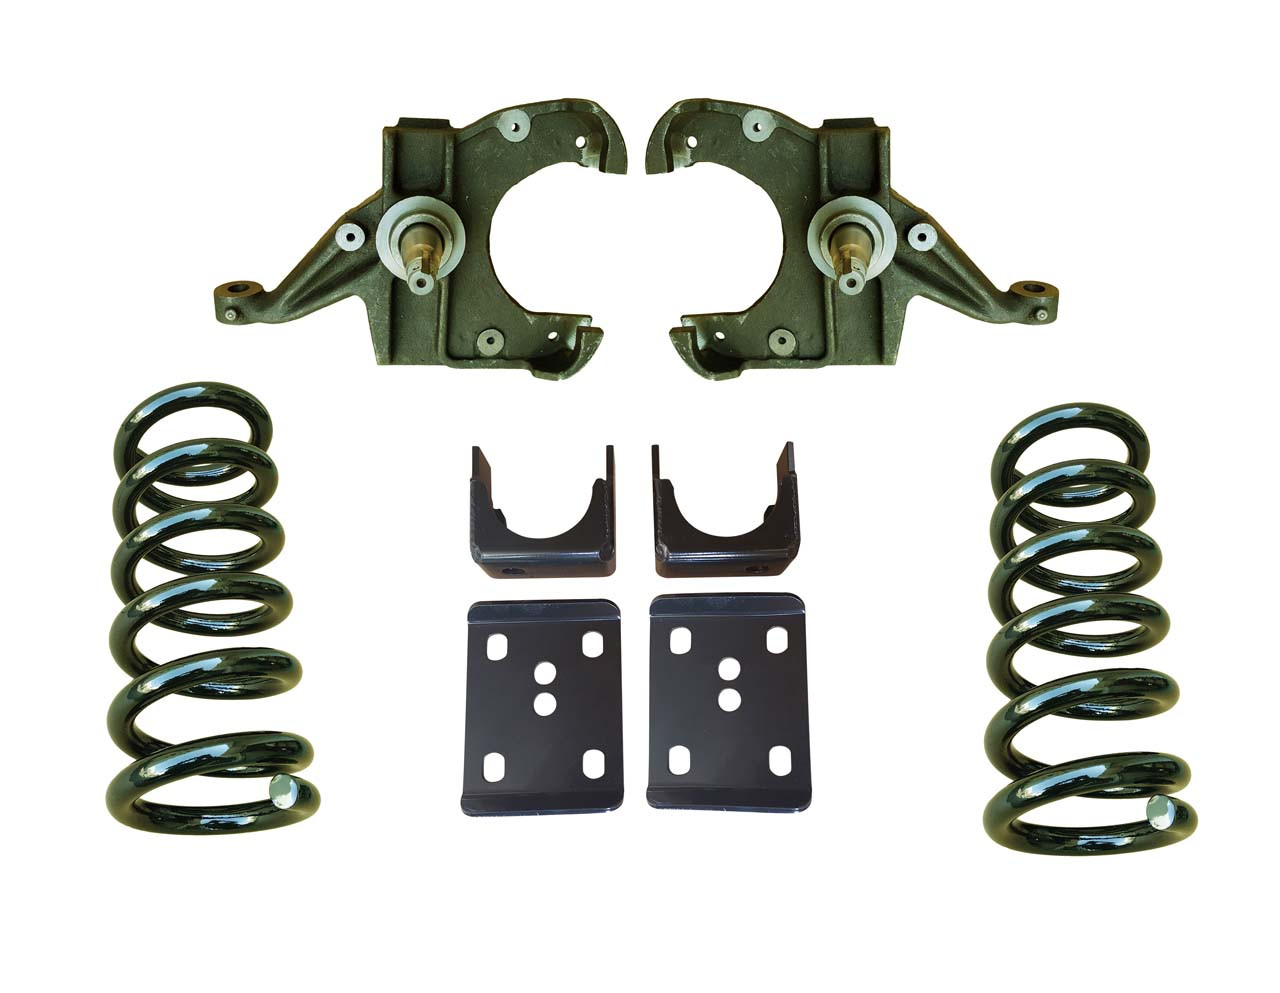 6in Suspension Lowering Kit for Chevy C10 GMC C15 Trucks